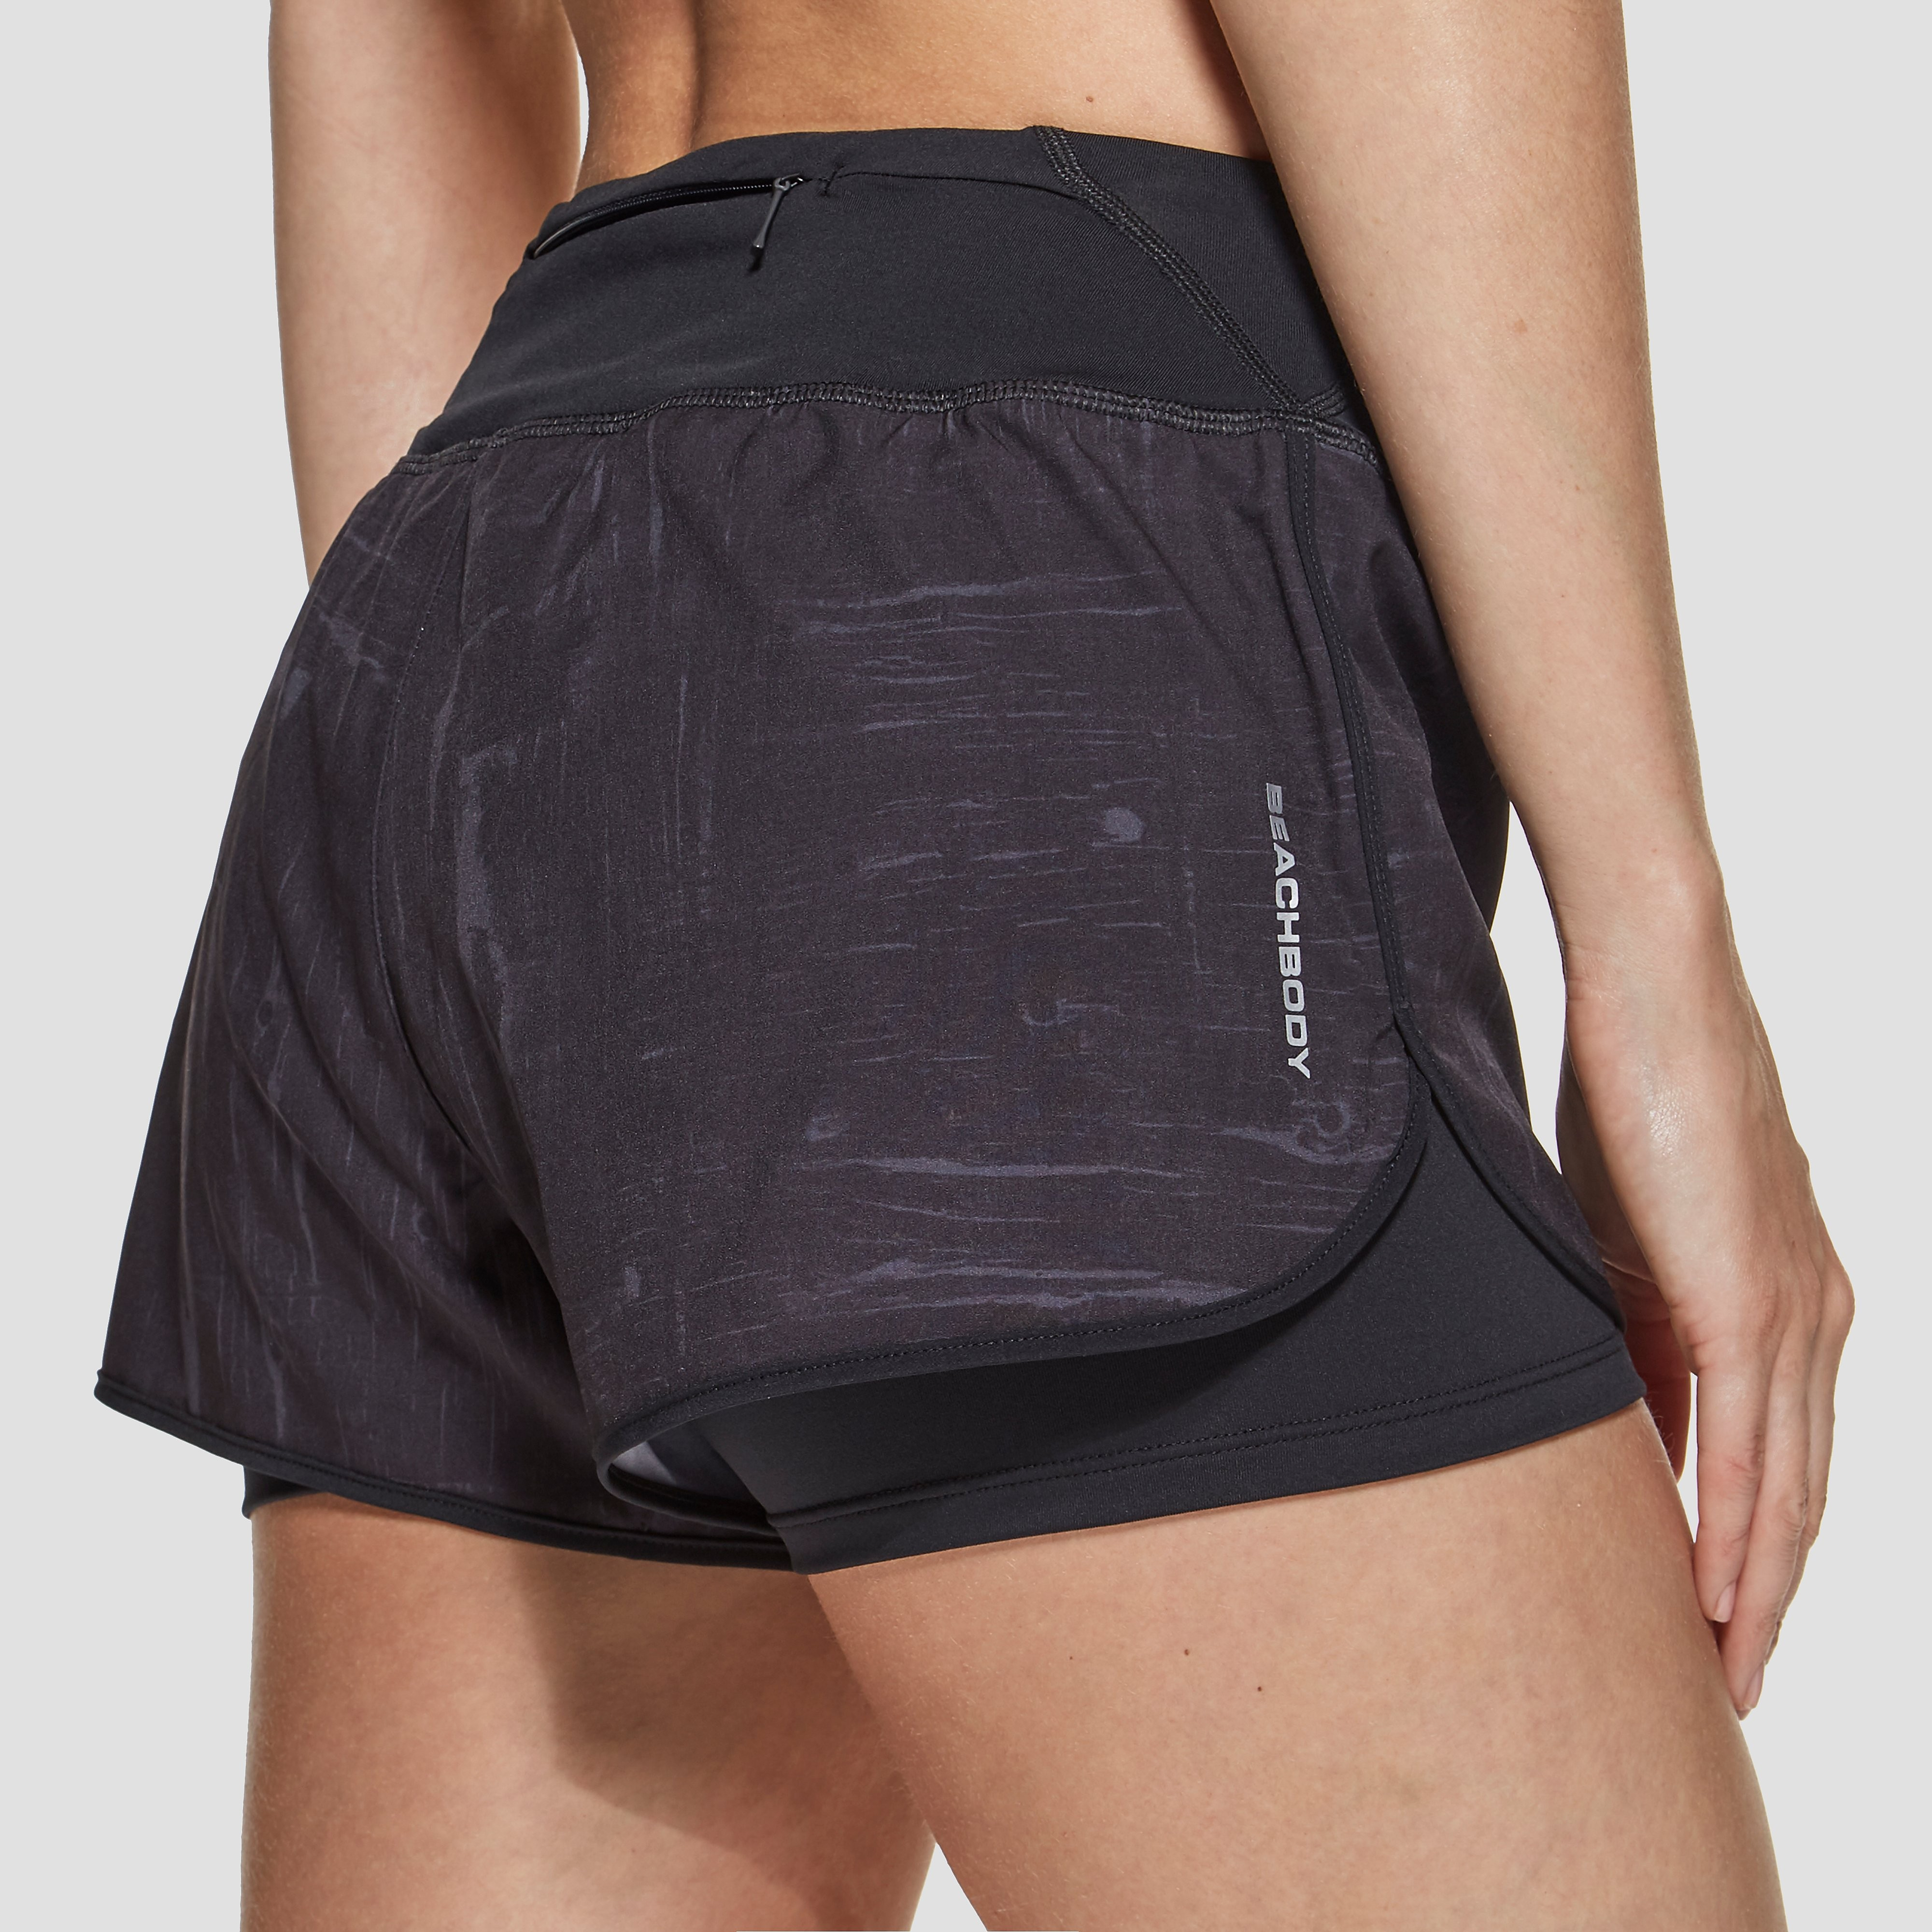 Beachbody Women's Flex 2-in-1 Shorts